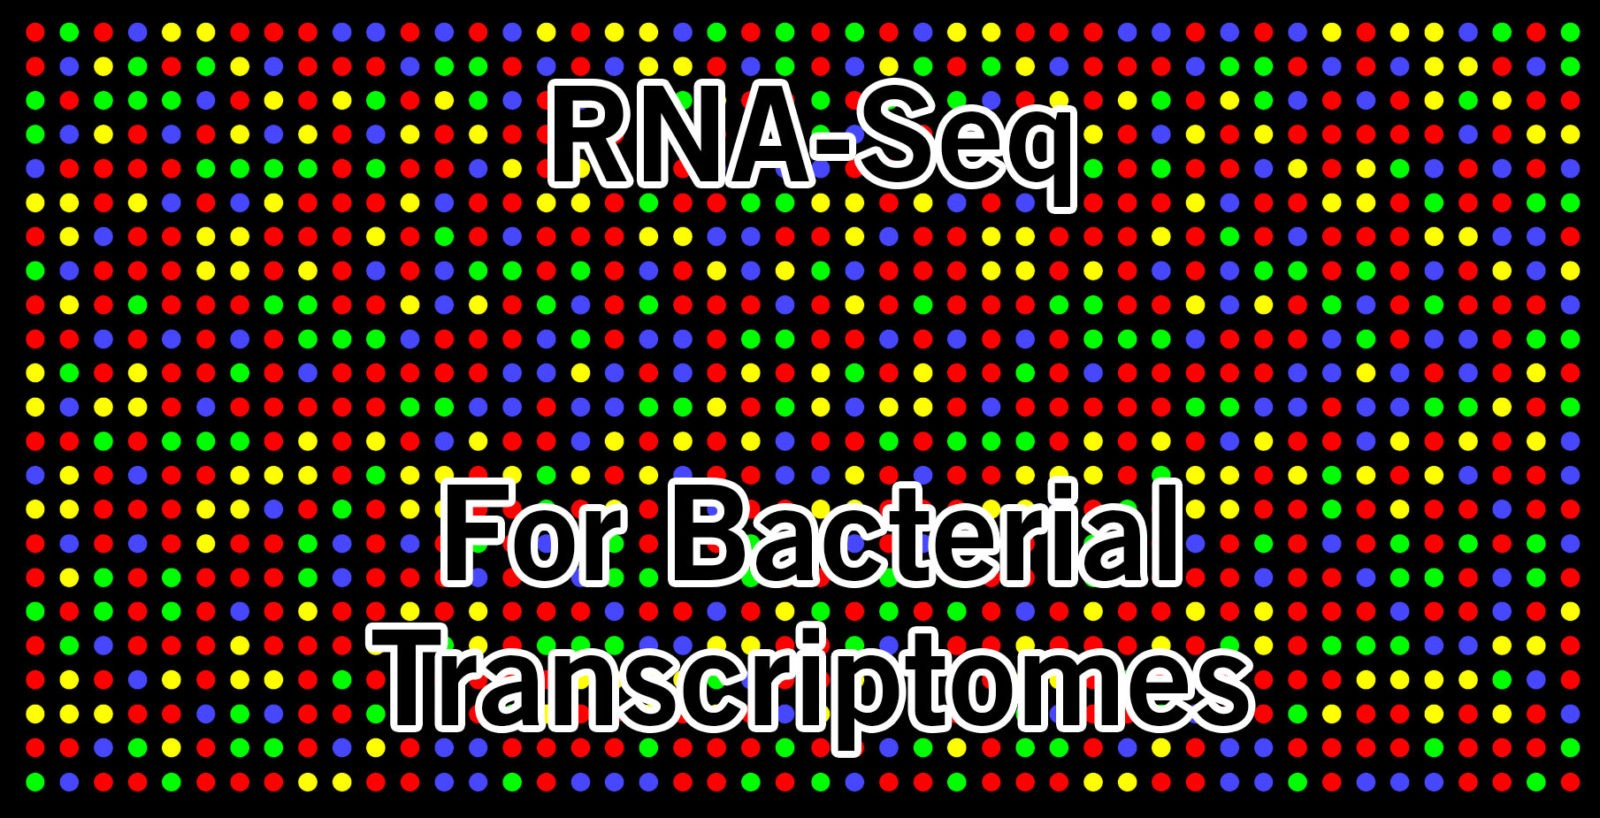 RNA Sequencing For Bacterial Transcriptomes